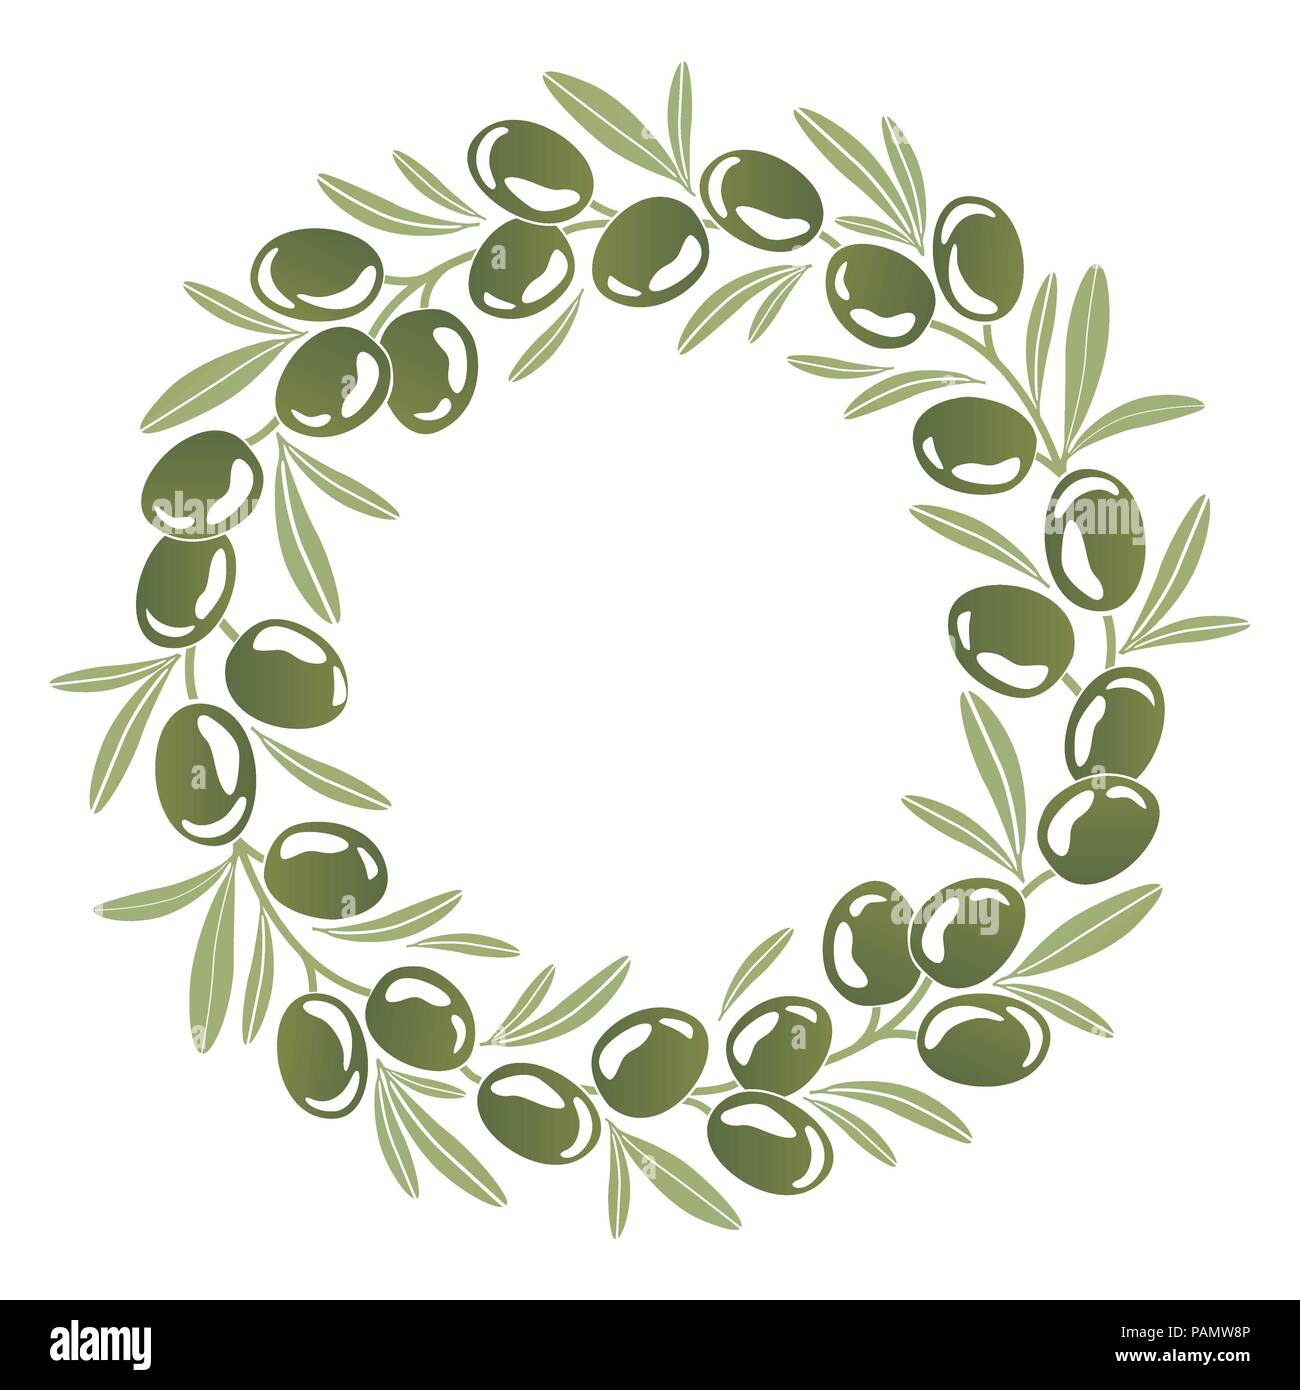 Round ornament Wreath of green olives - Stock Image